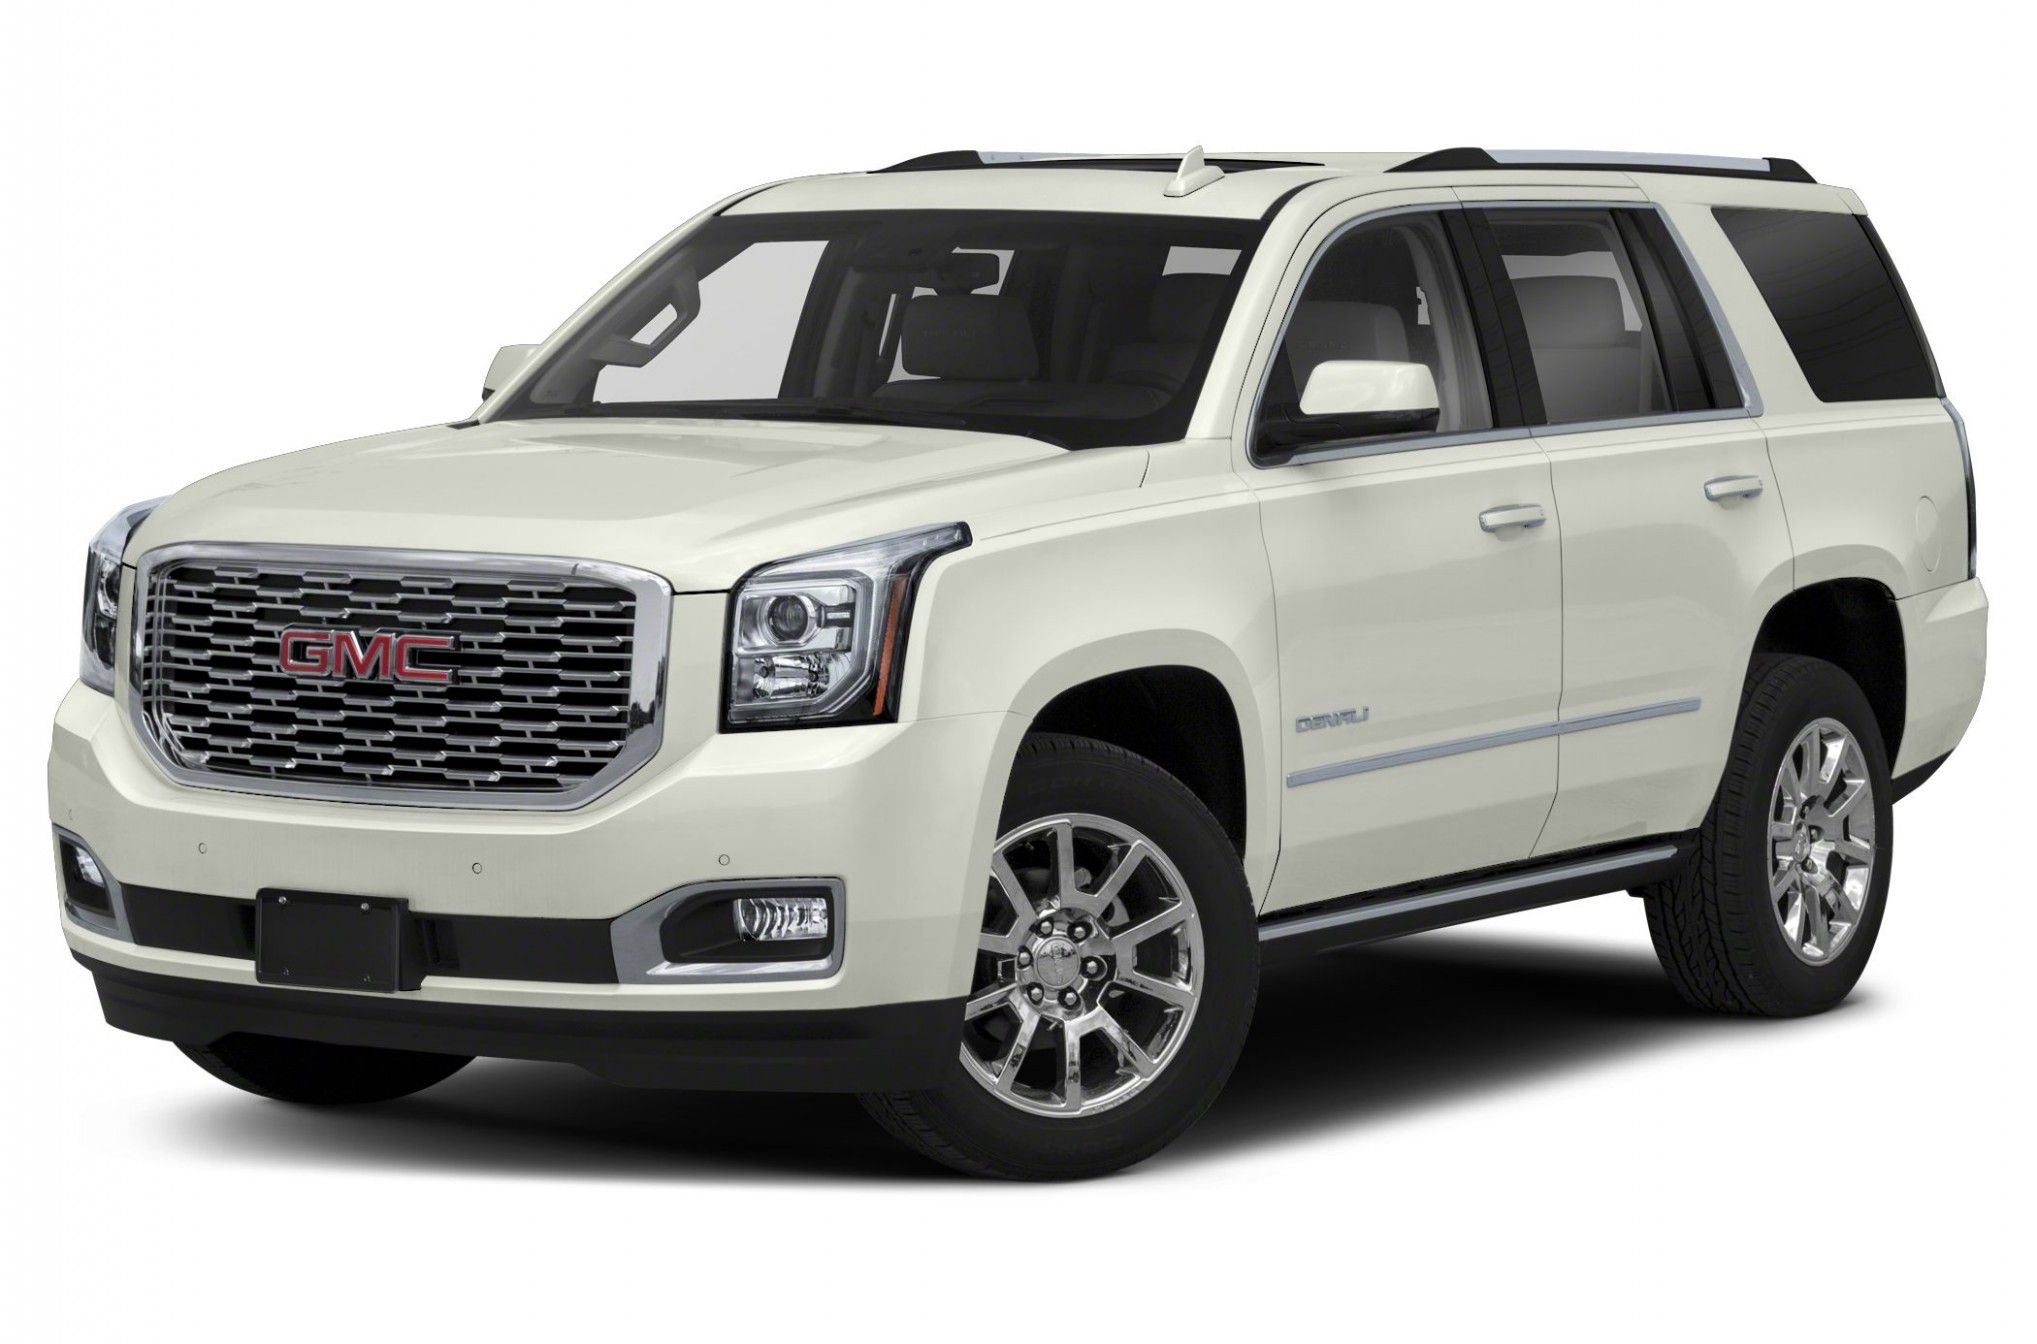 15 Doubts About 2020 Gmc Yukon Towing Capacity Design You Should Clarify